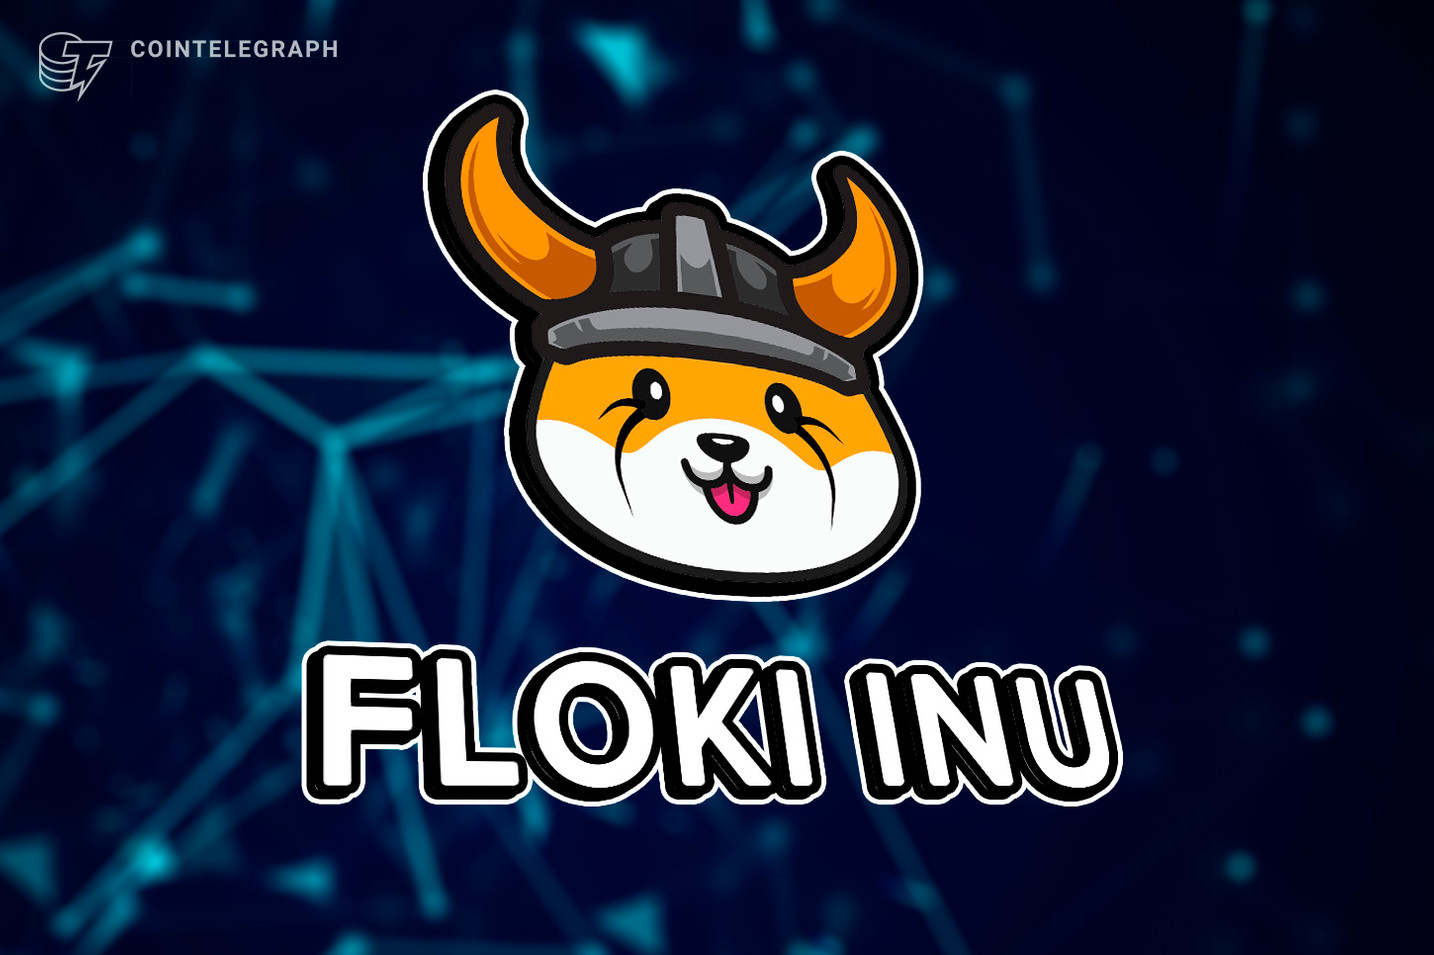 Elon Musk just bought a Shiba Inu and named it Floki